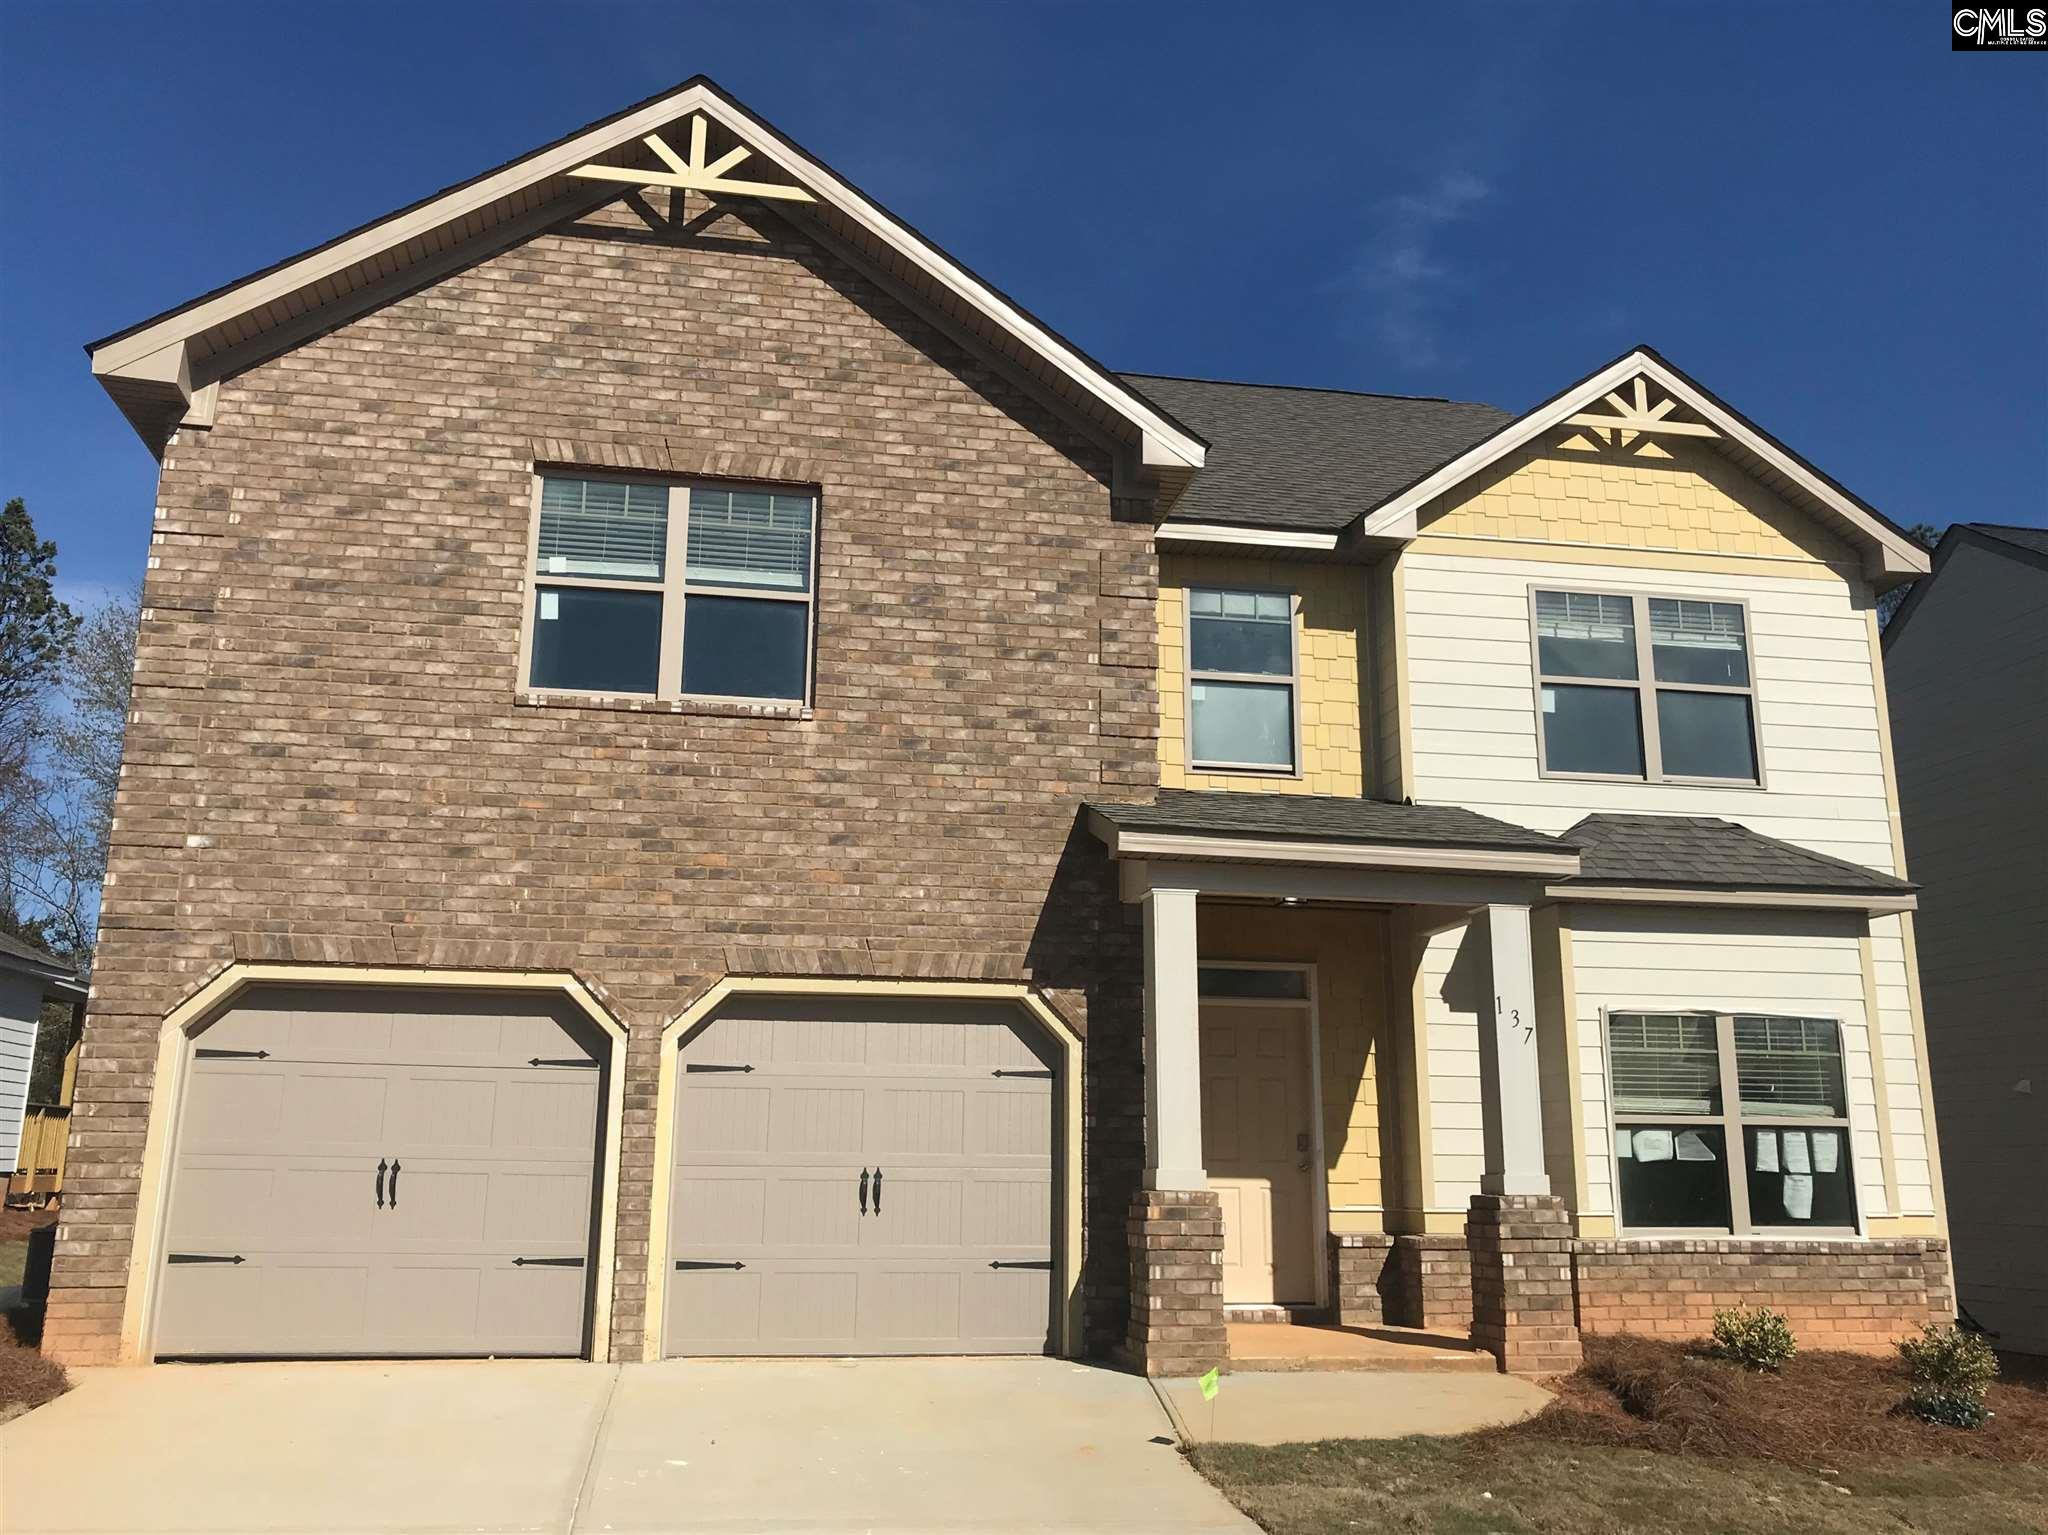 137 Village View Lexington, SC 29072